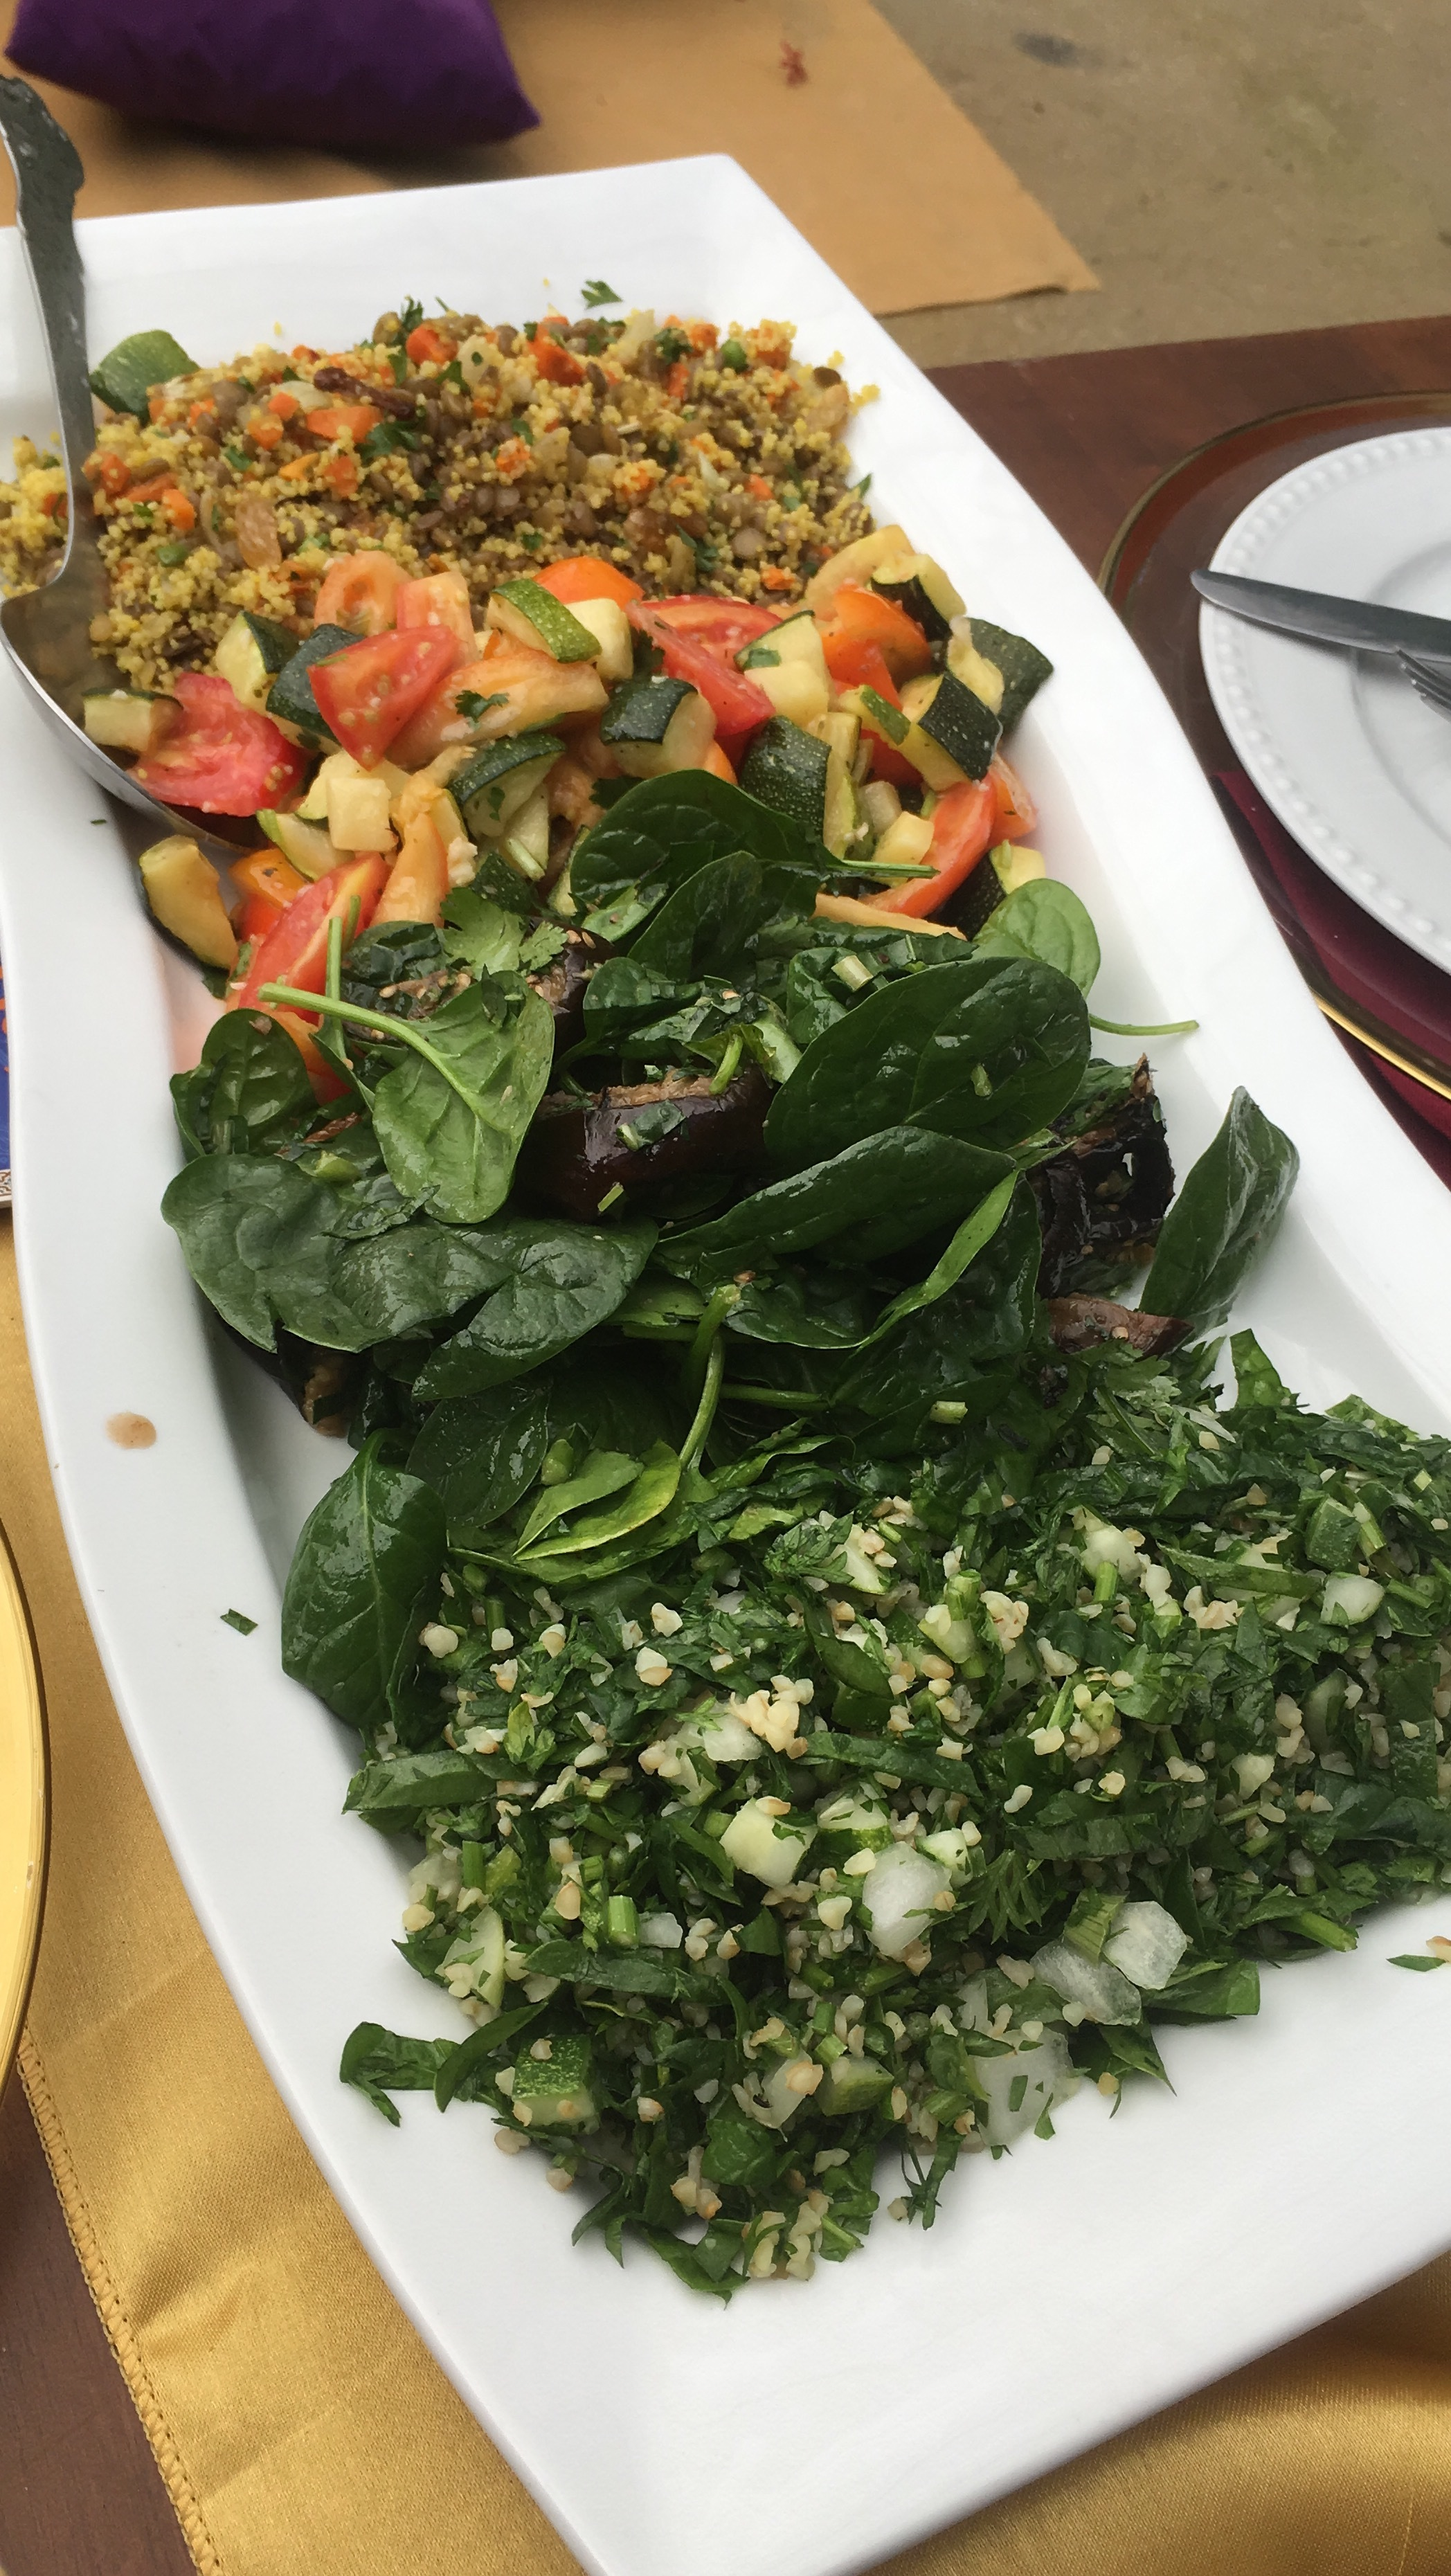 Roast beetroot salad with greens, couscous salad, grilled eggplant salad with hummus and Tabbouleh